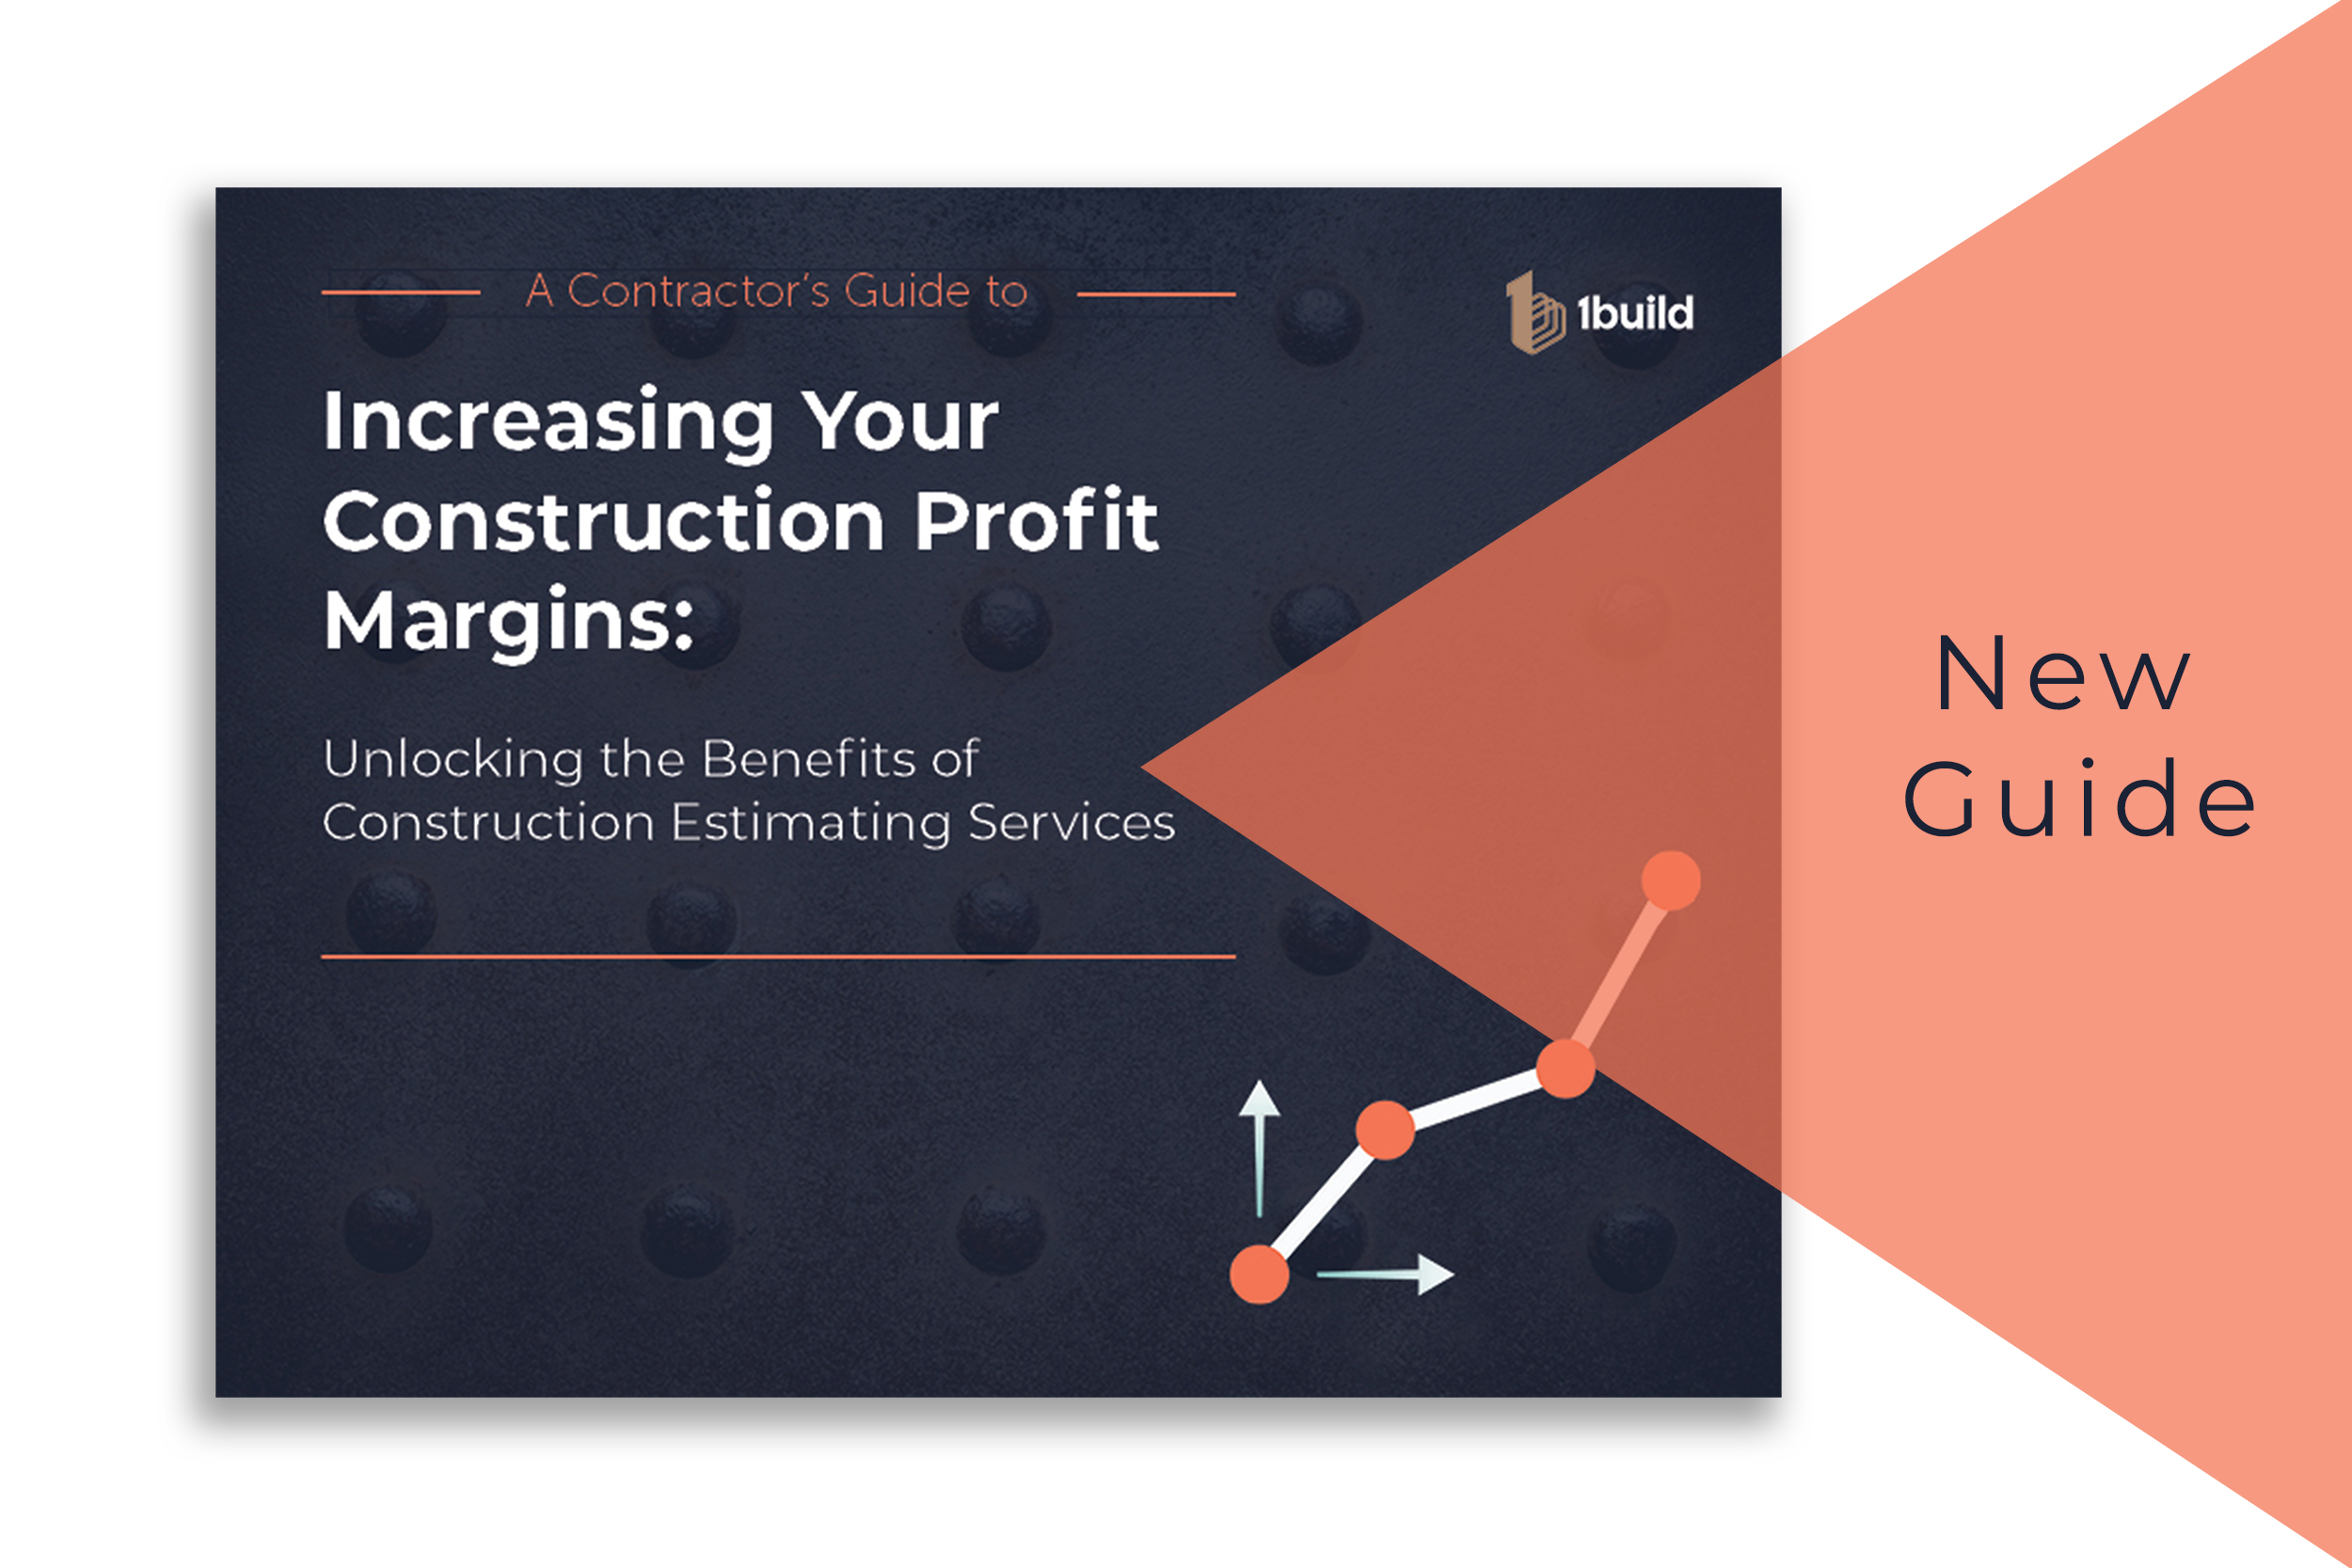 Contractors Guide to Increasing Construction Profit Margins